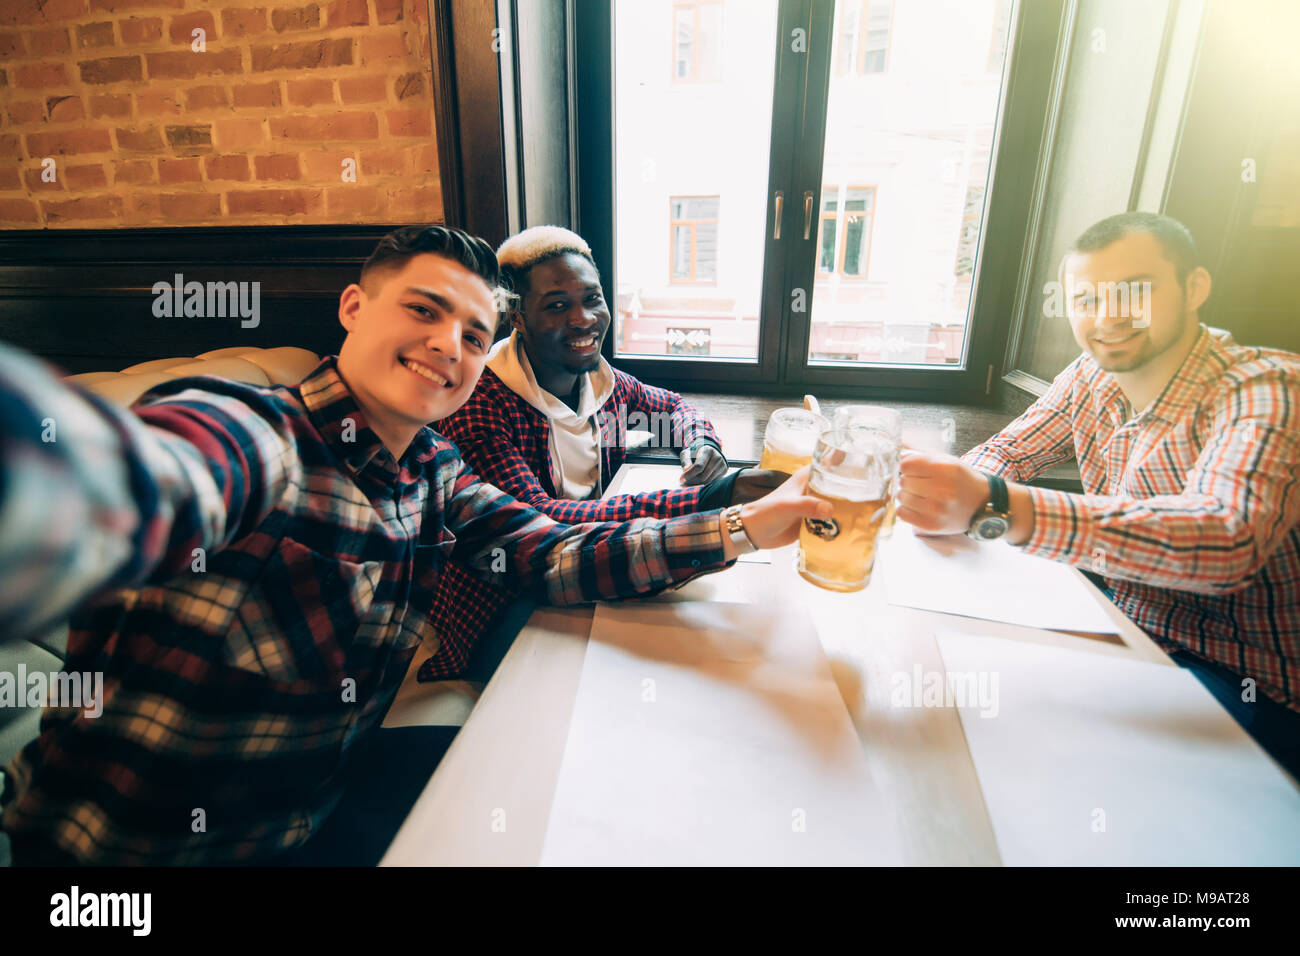 people, leisure, friendship, technology and bachelor party concept - happy male friends taking selfie and drinking beer at bar or pub - Stock Image